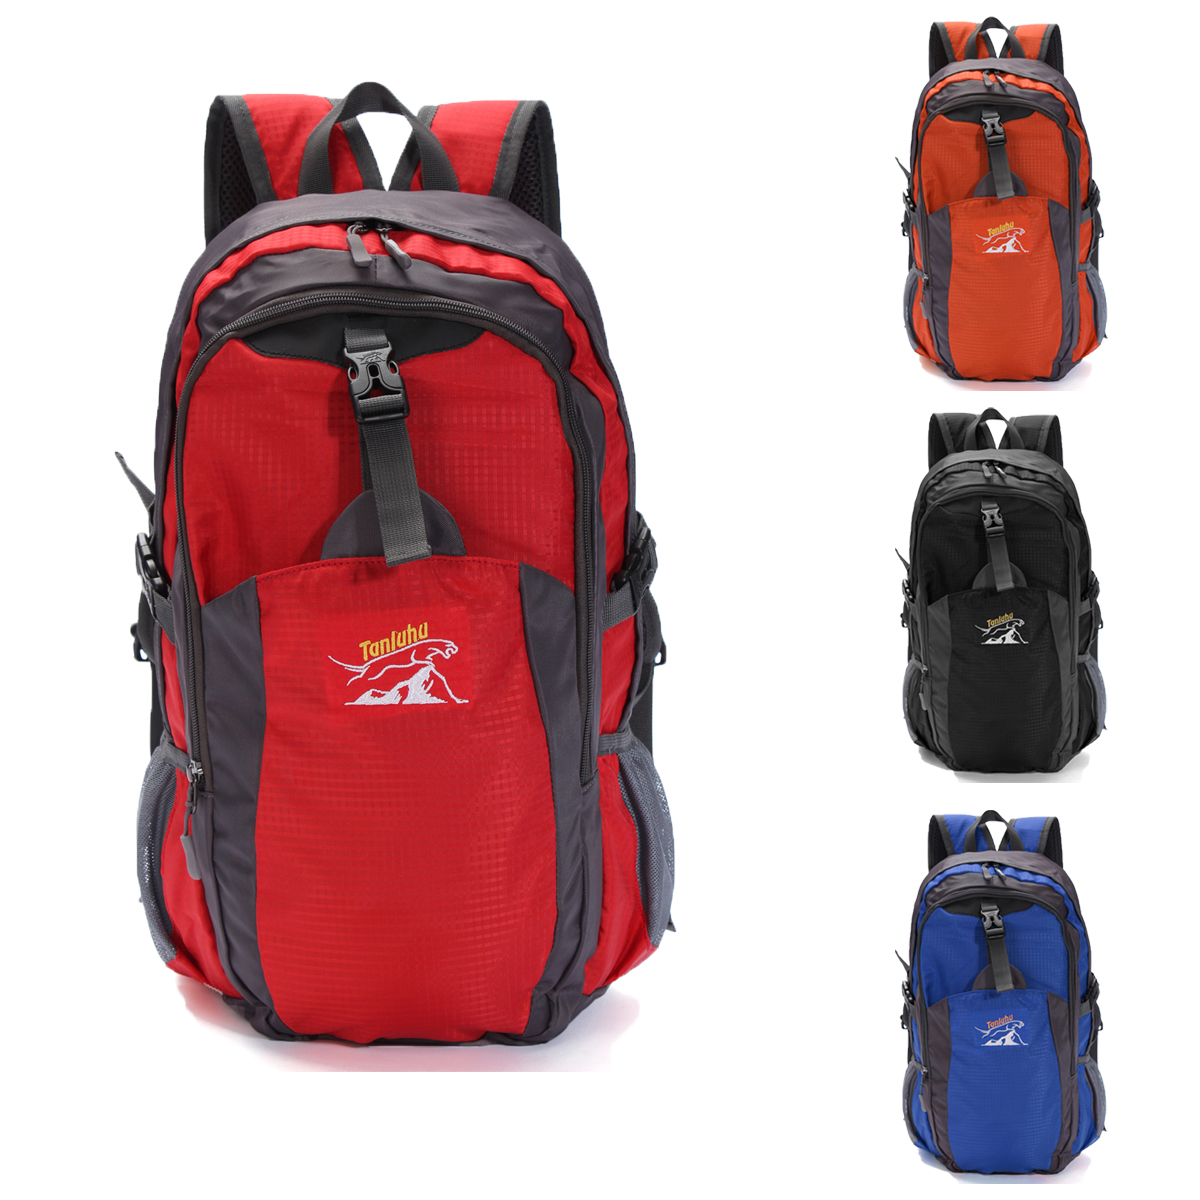 Travel Backpack Light Weight Waterproof Camping Hiking ...